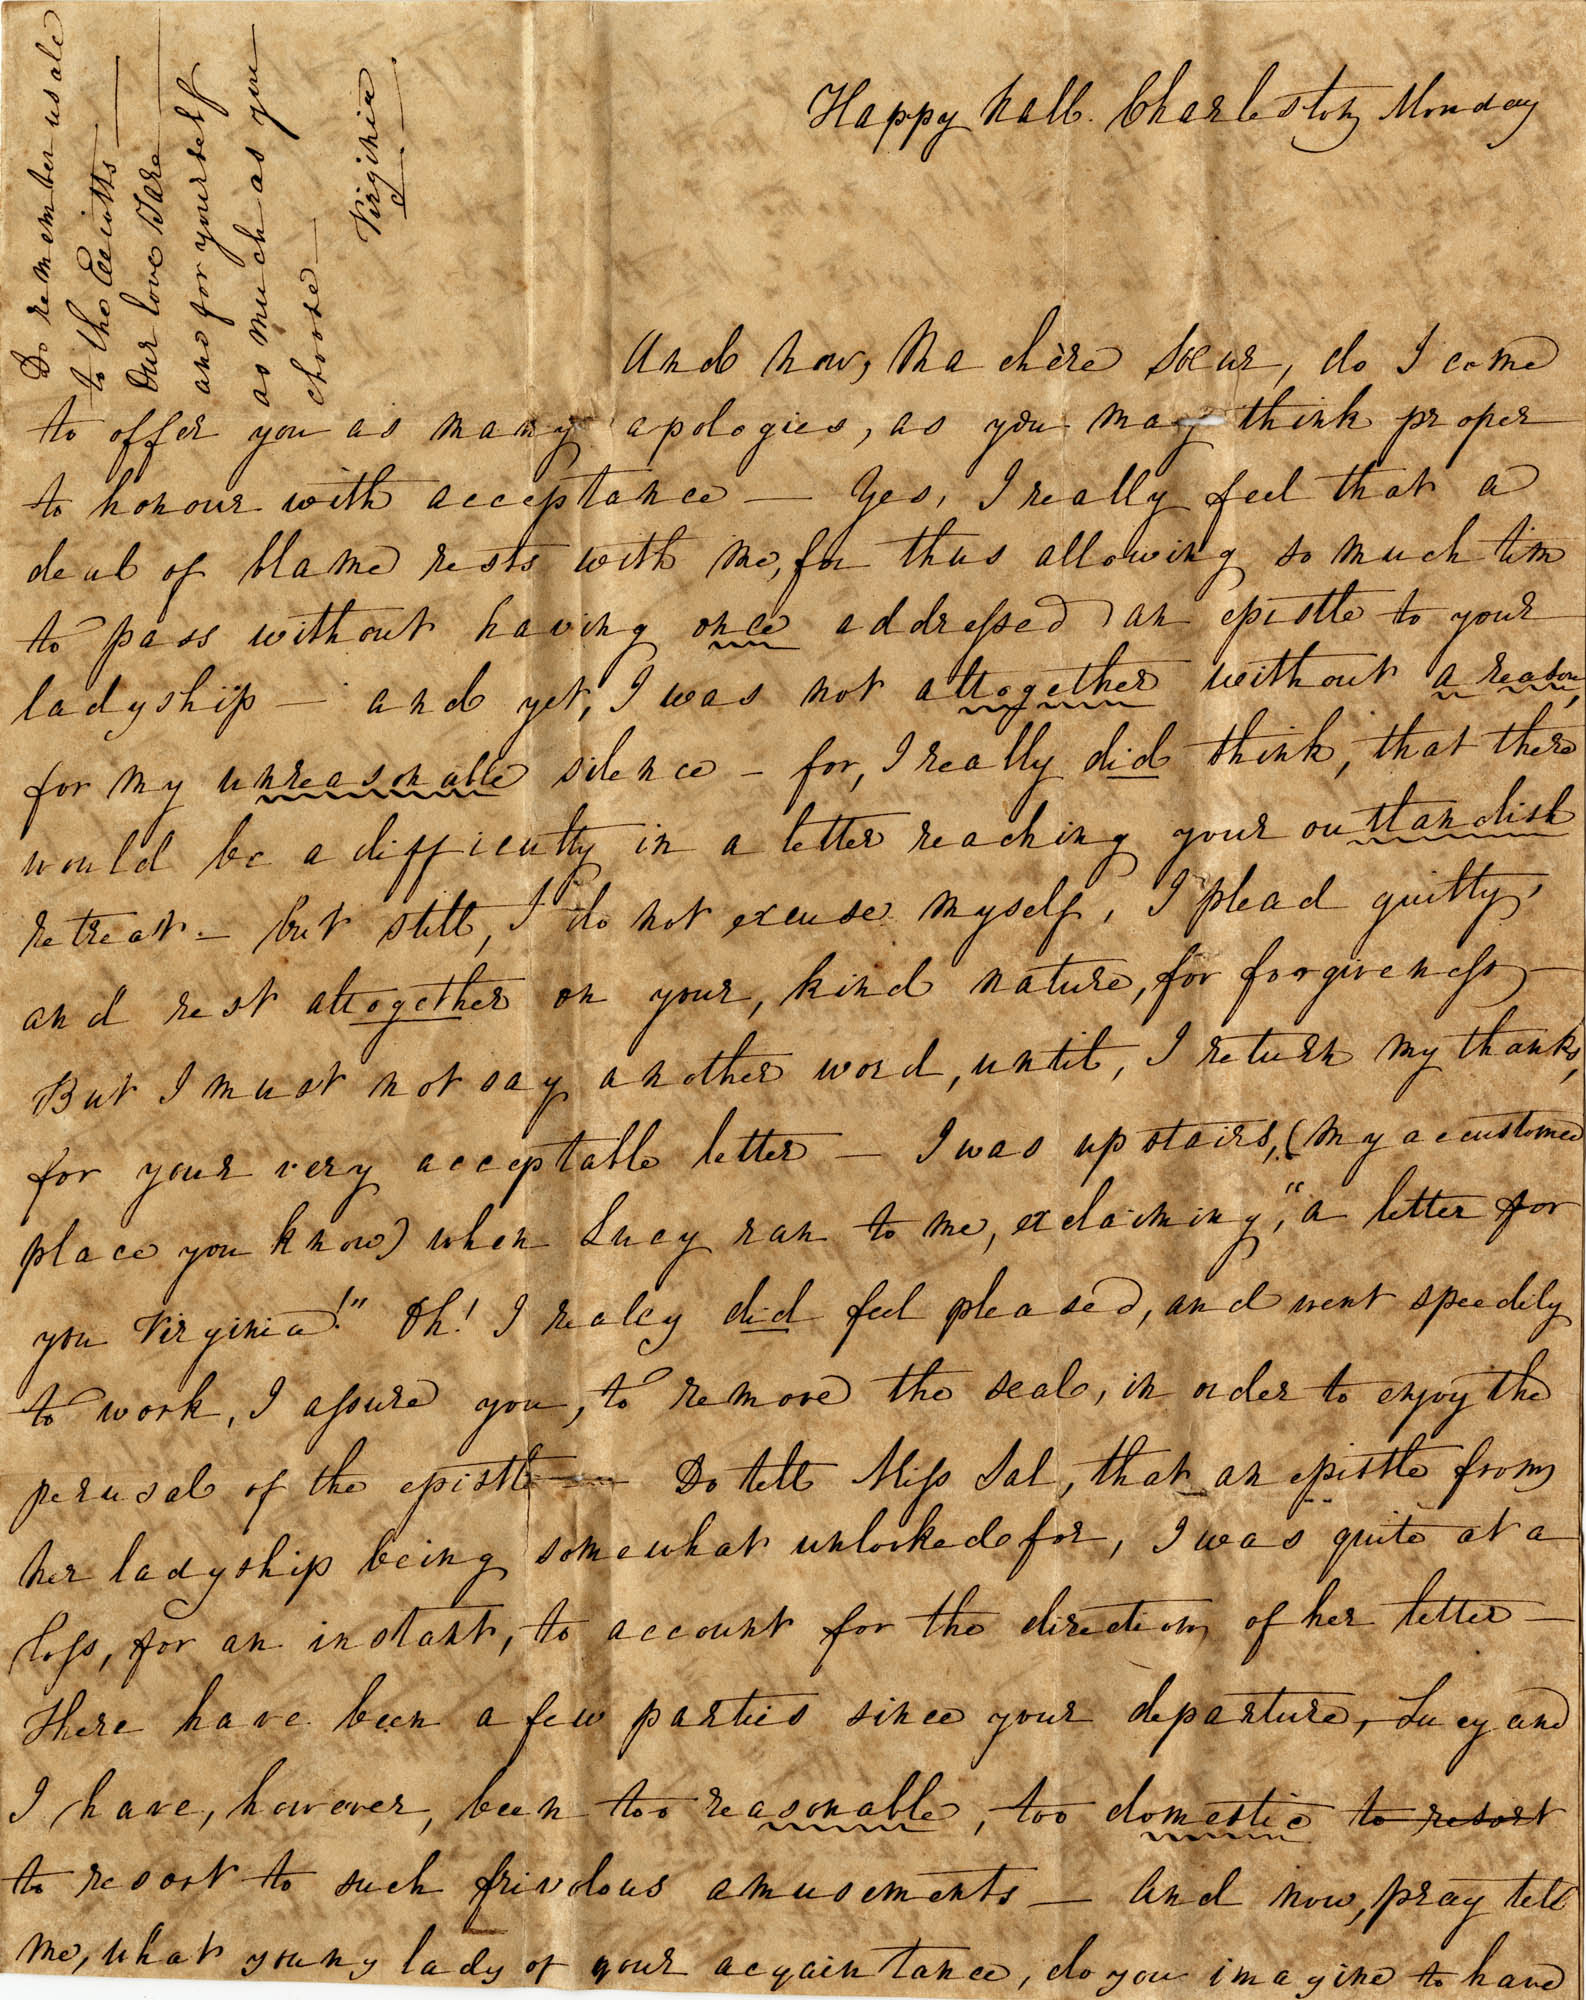 039. Virginia and Lucy to Anna B. Wilkinson -- n.d.